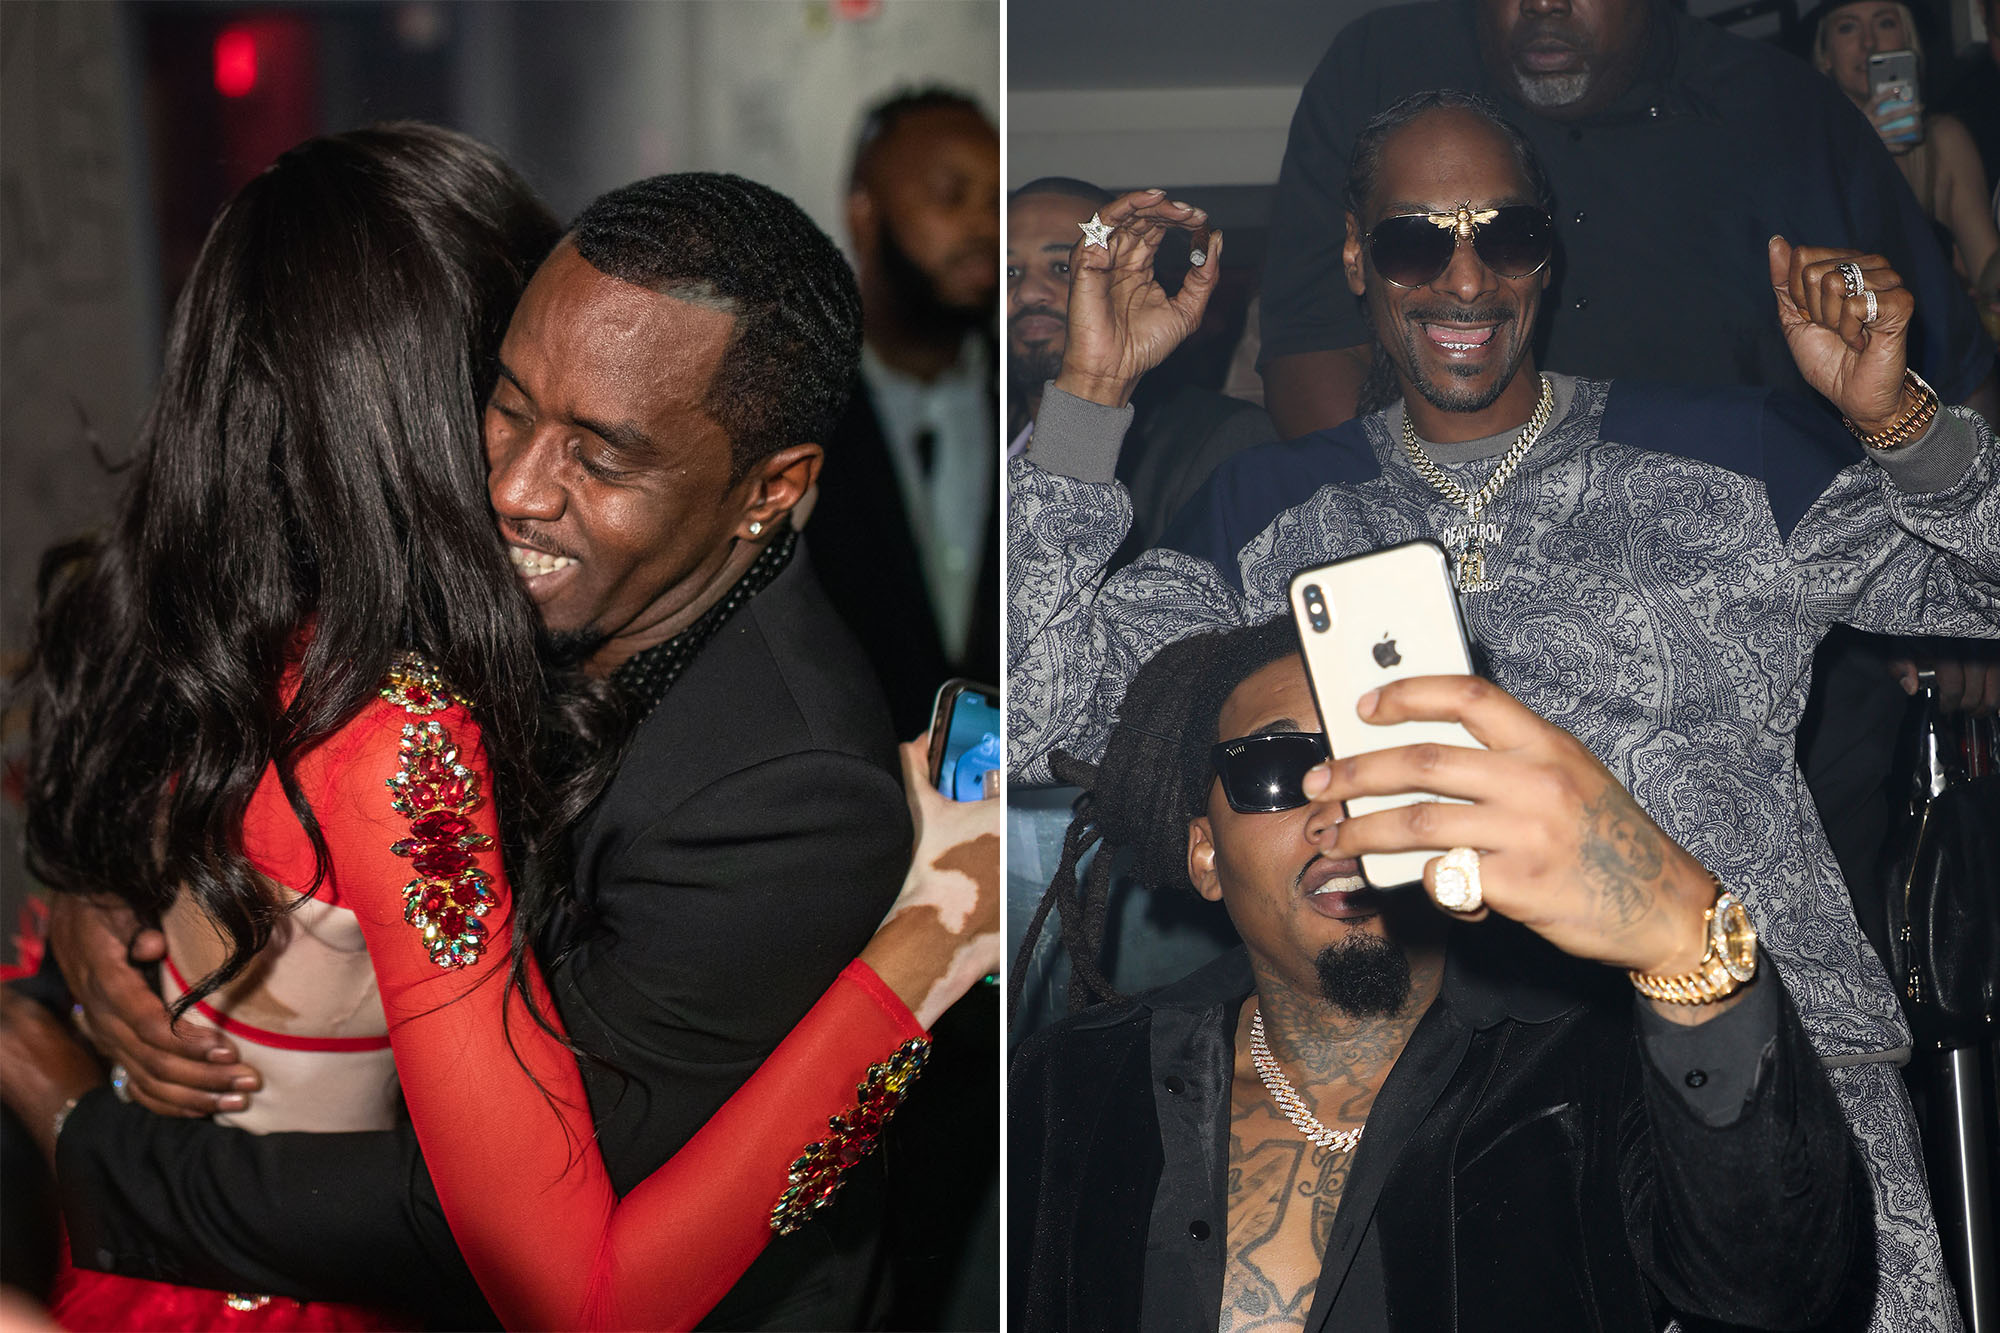 Snoop Dogg, Diddy, Winnie Harlow celebrate New Year's Eve Miami-style